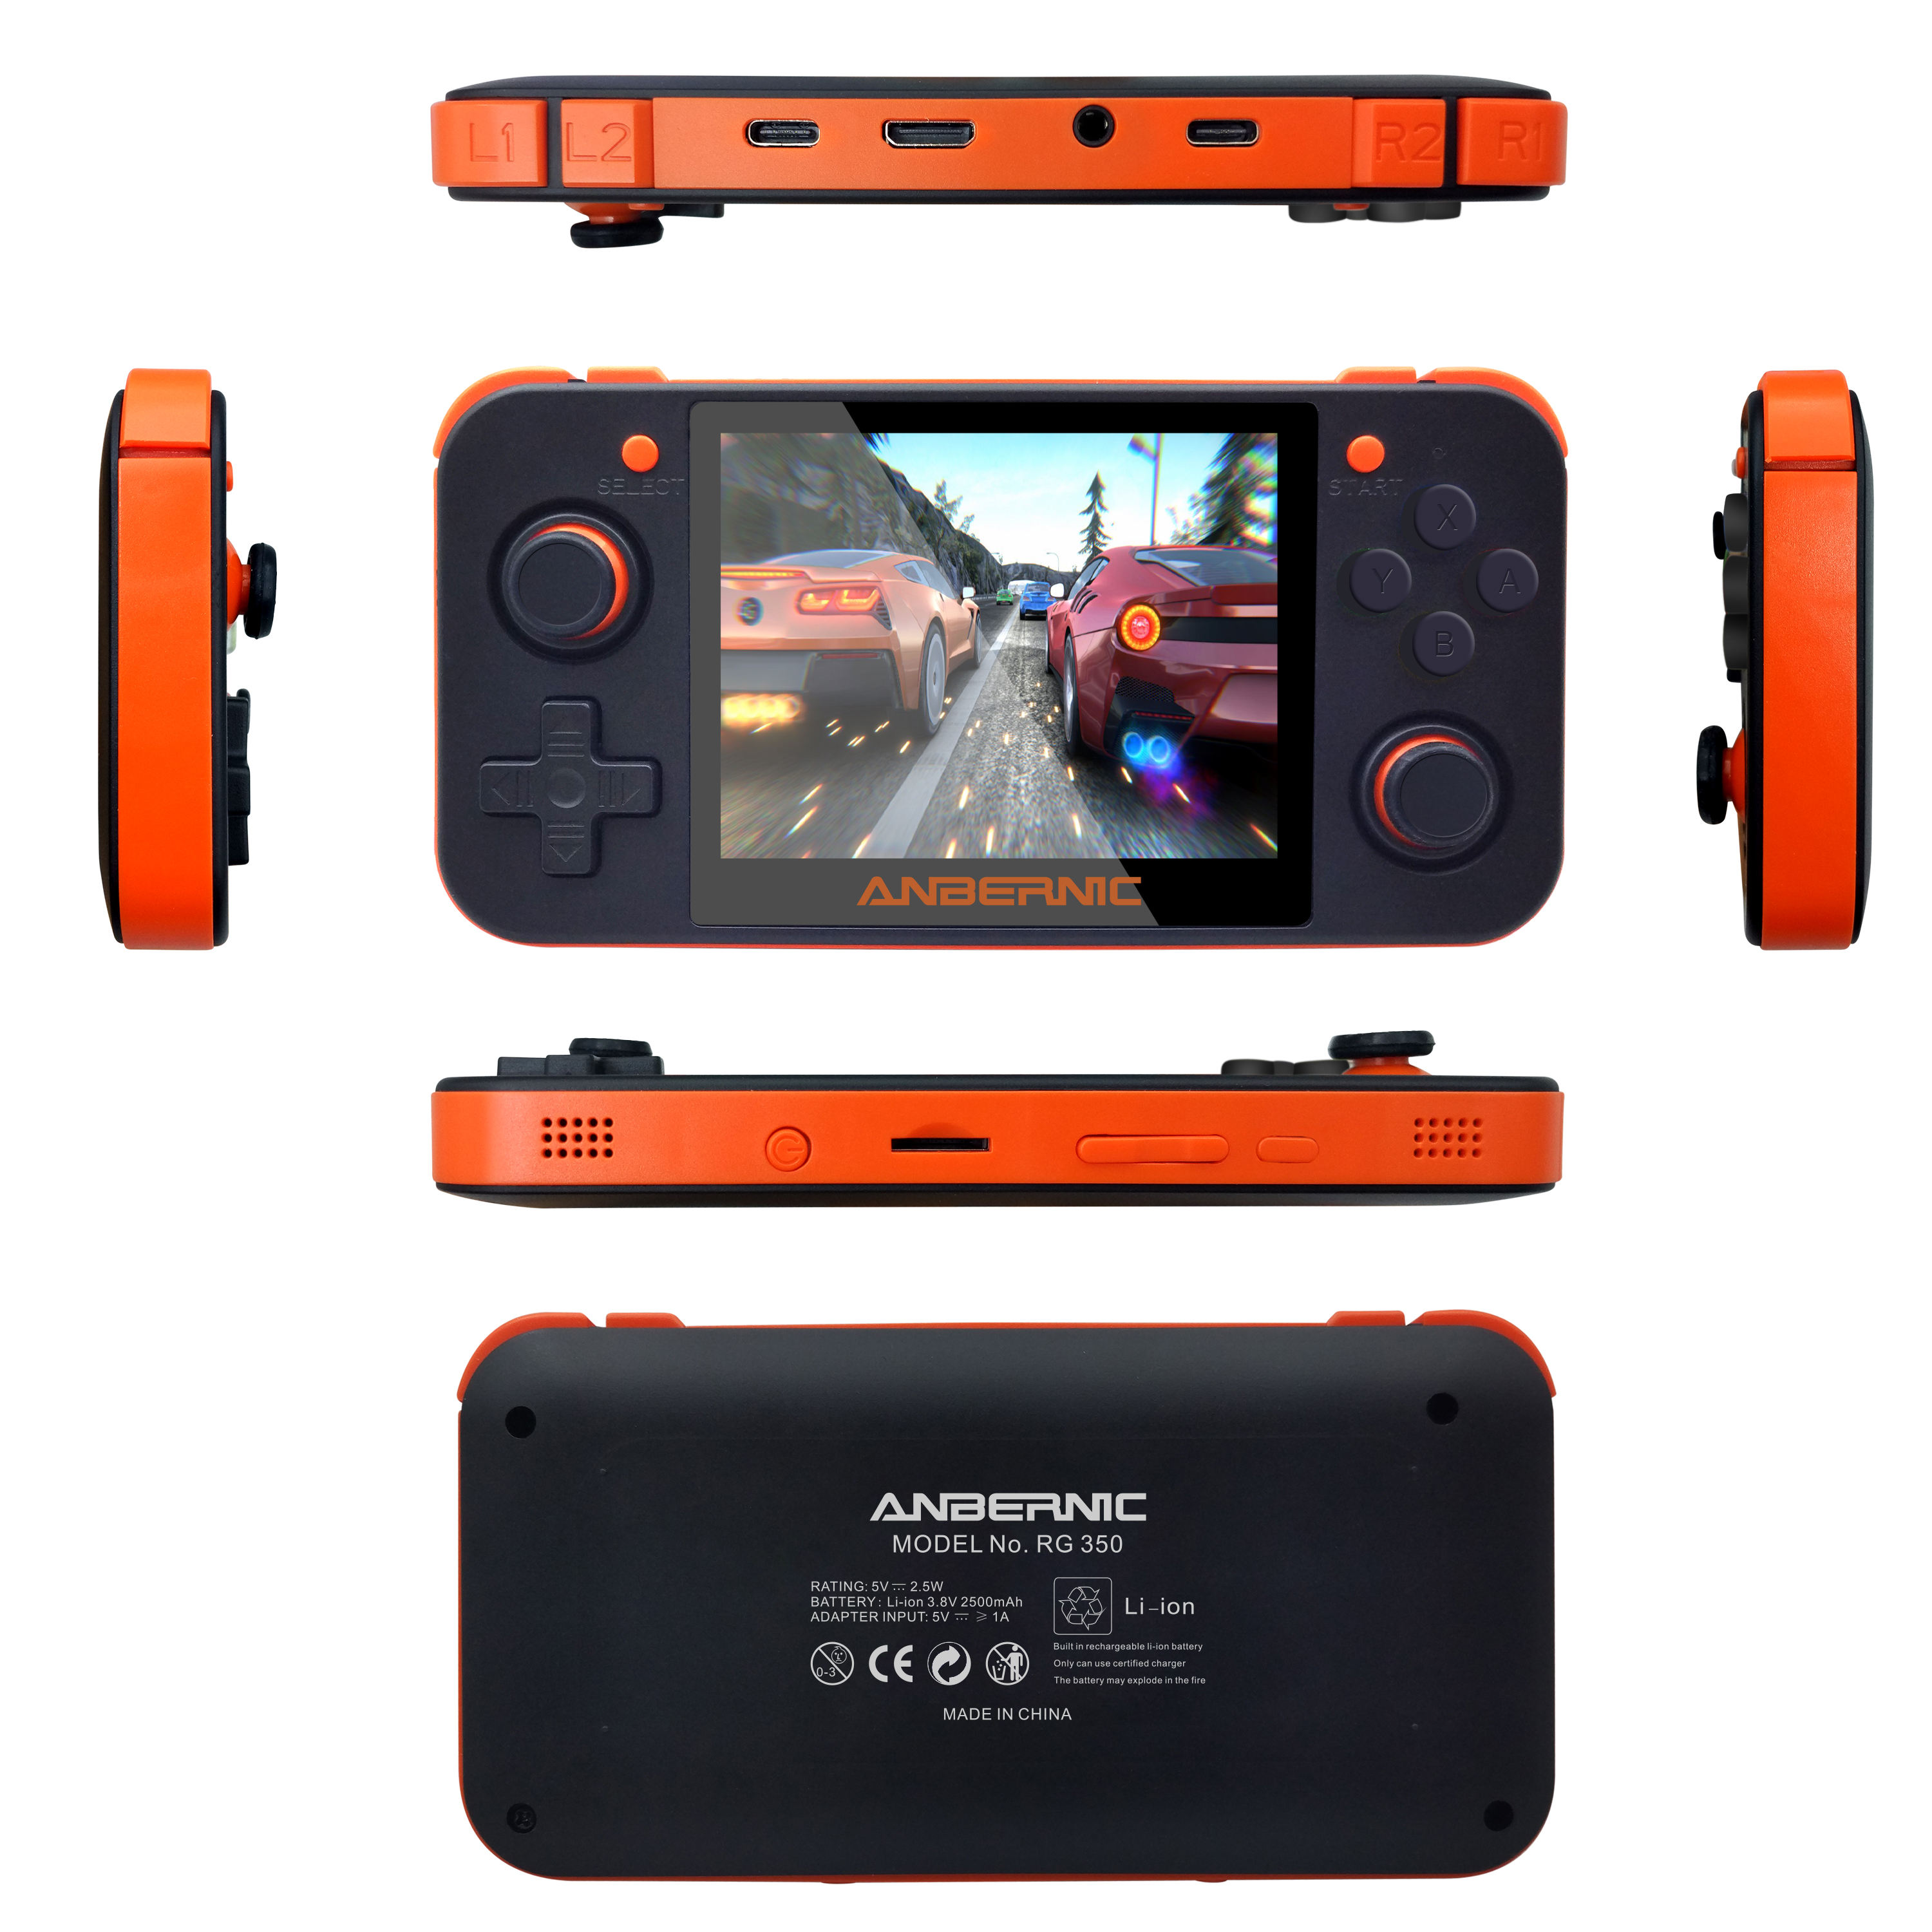 Retro Handheld Game Console 3.5 inch IPS WXGA Screen Classic Portable TV Video Player Game Console RG350